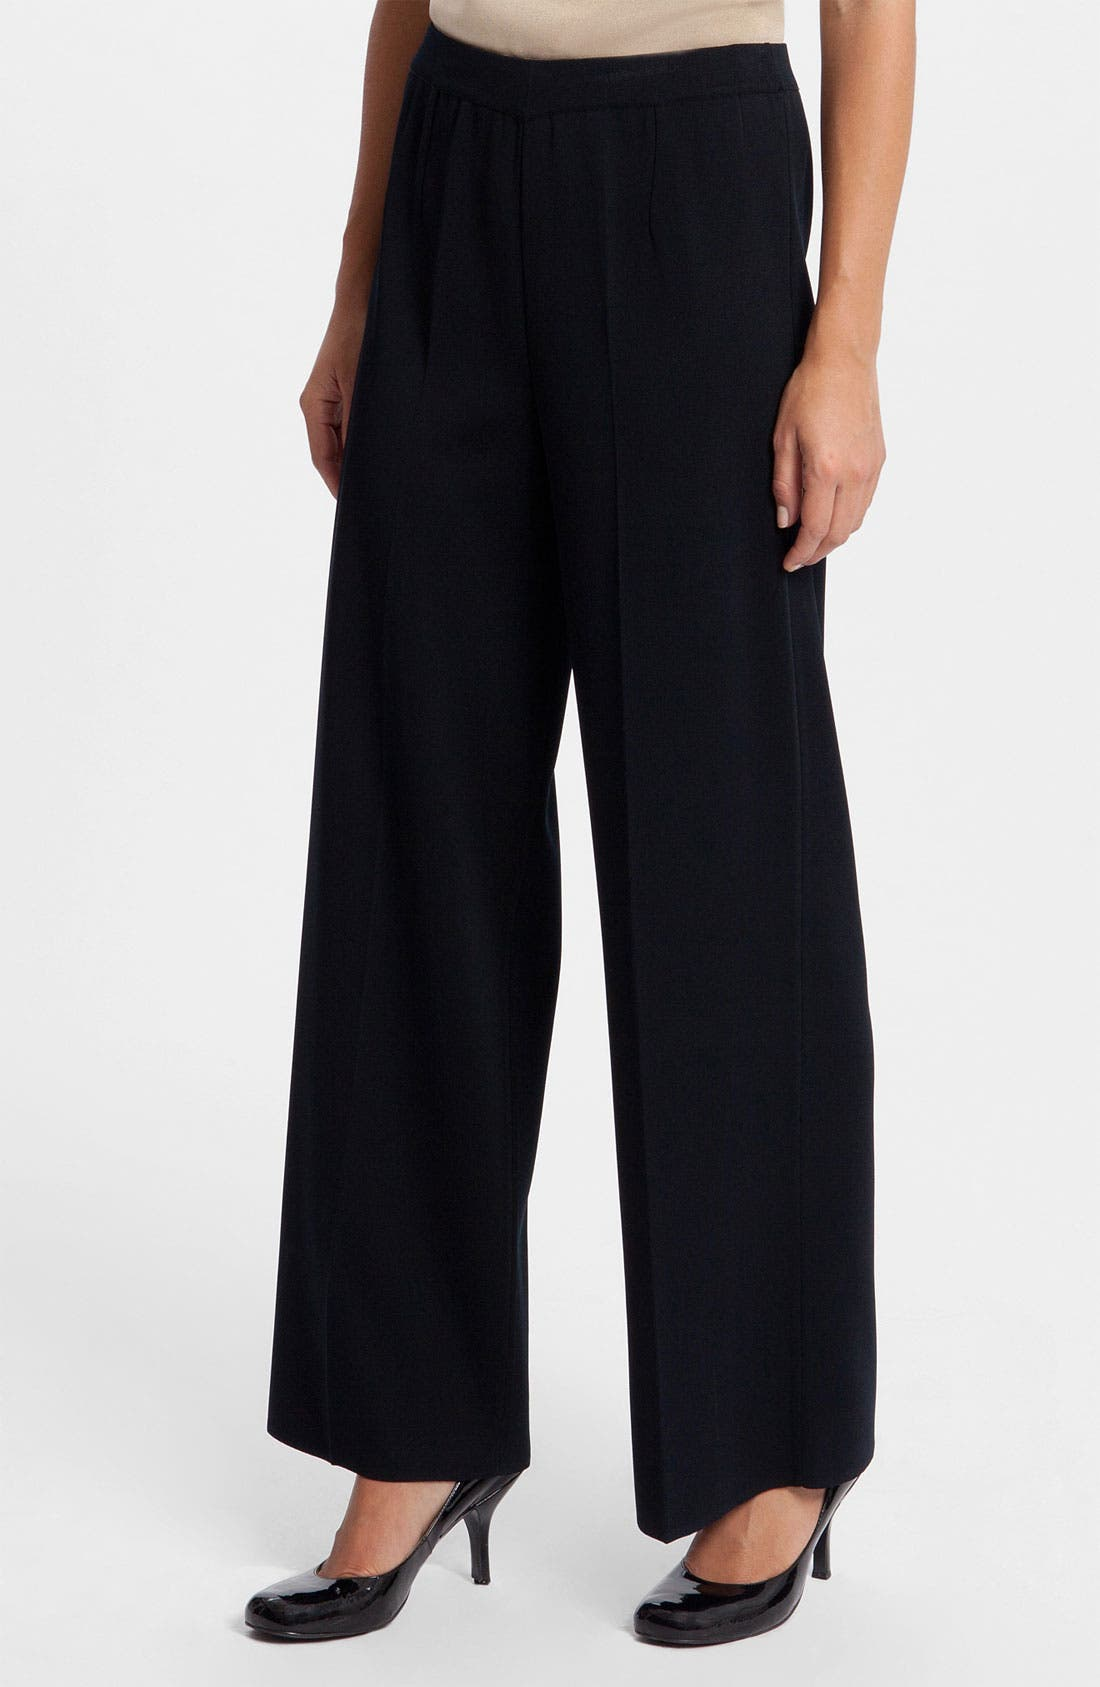 Alternate Image 1 Selected - Ming Wang Wide Leg Pants